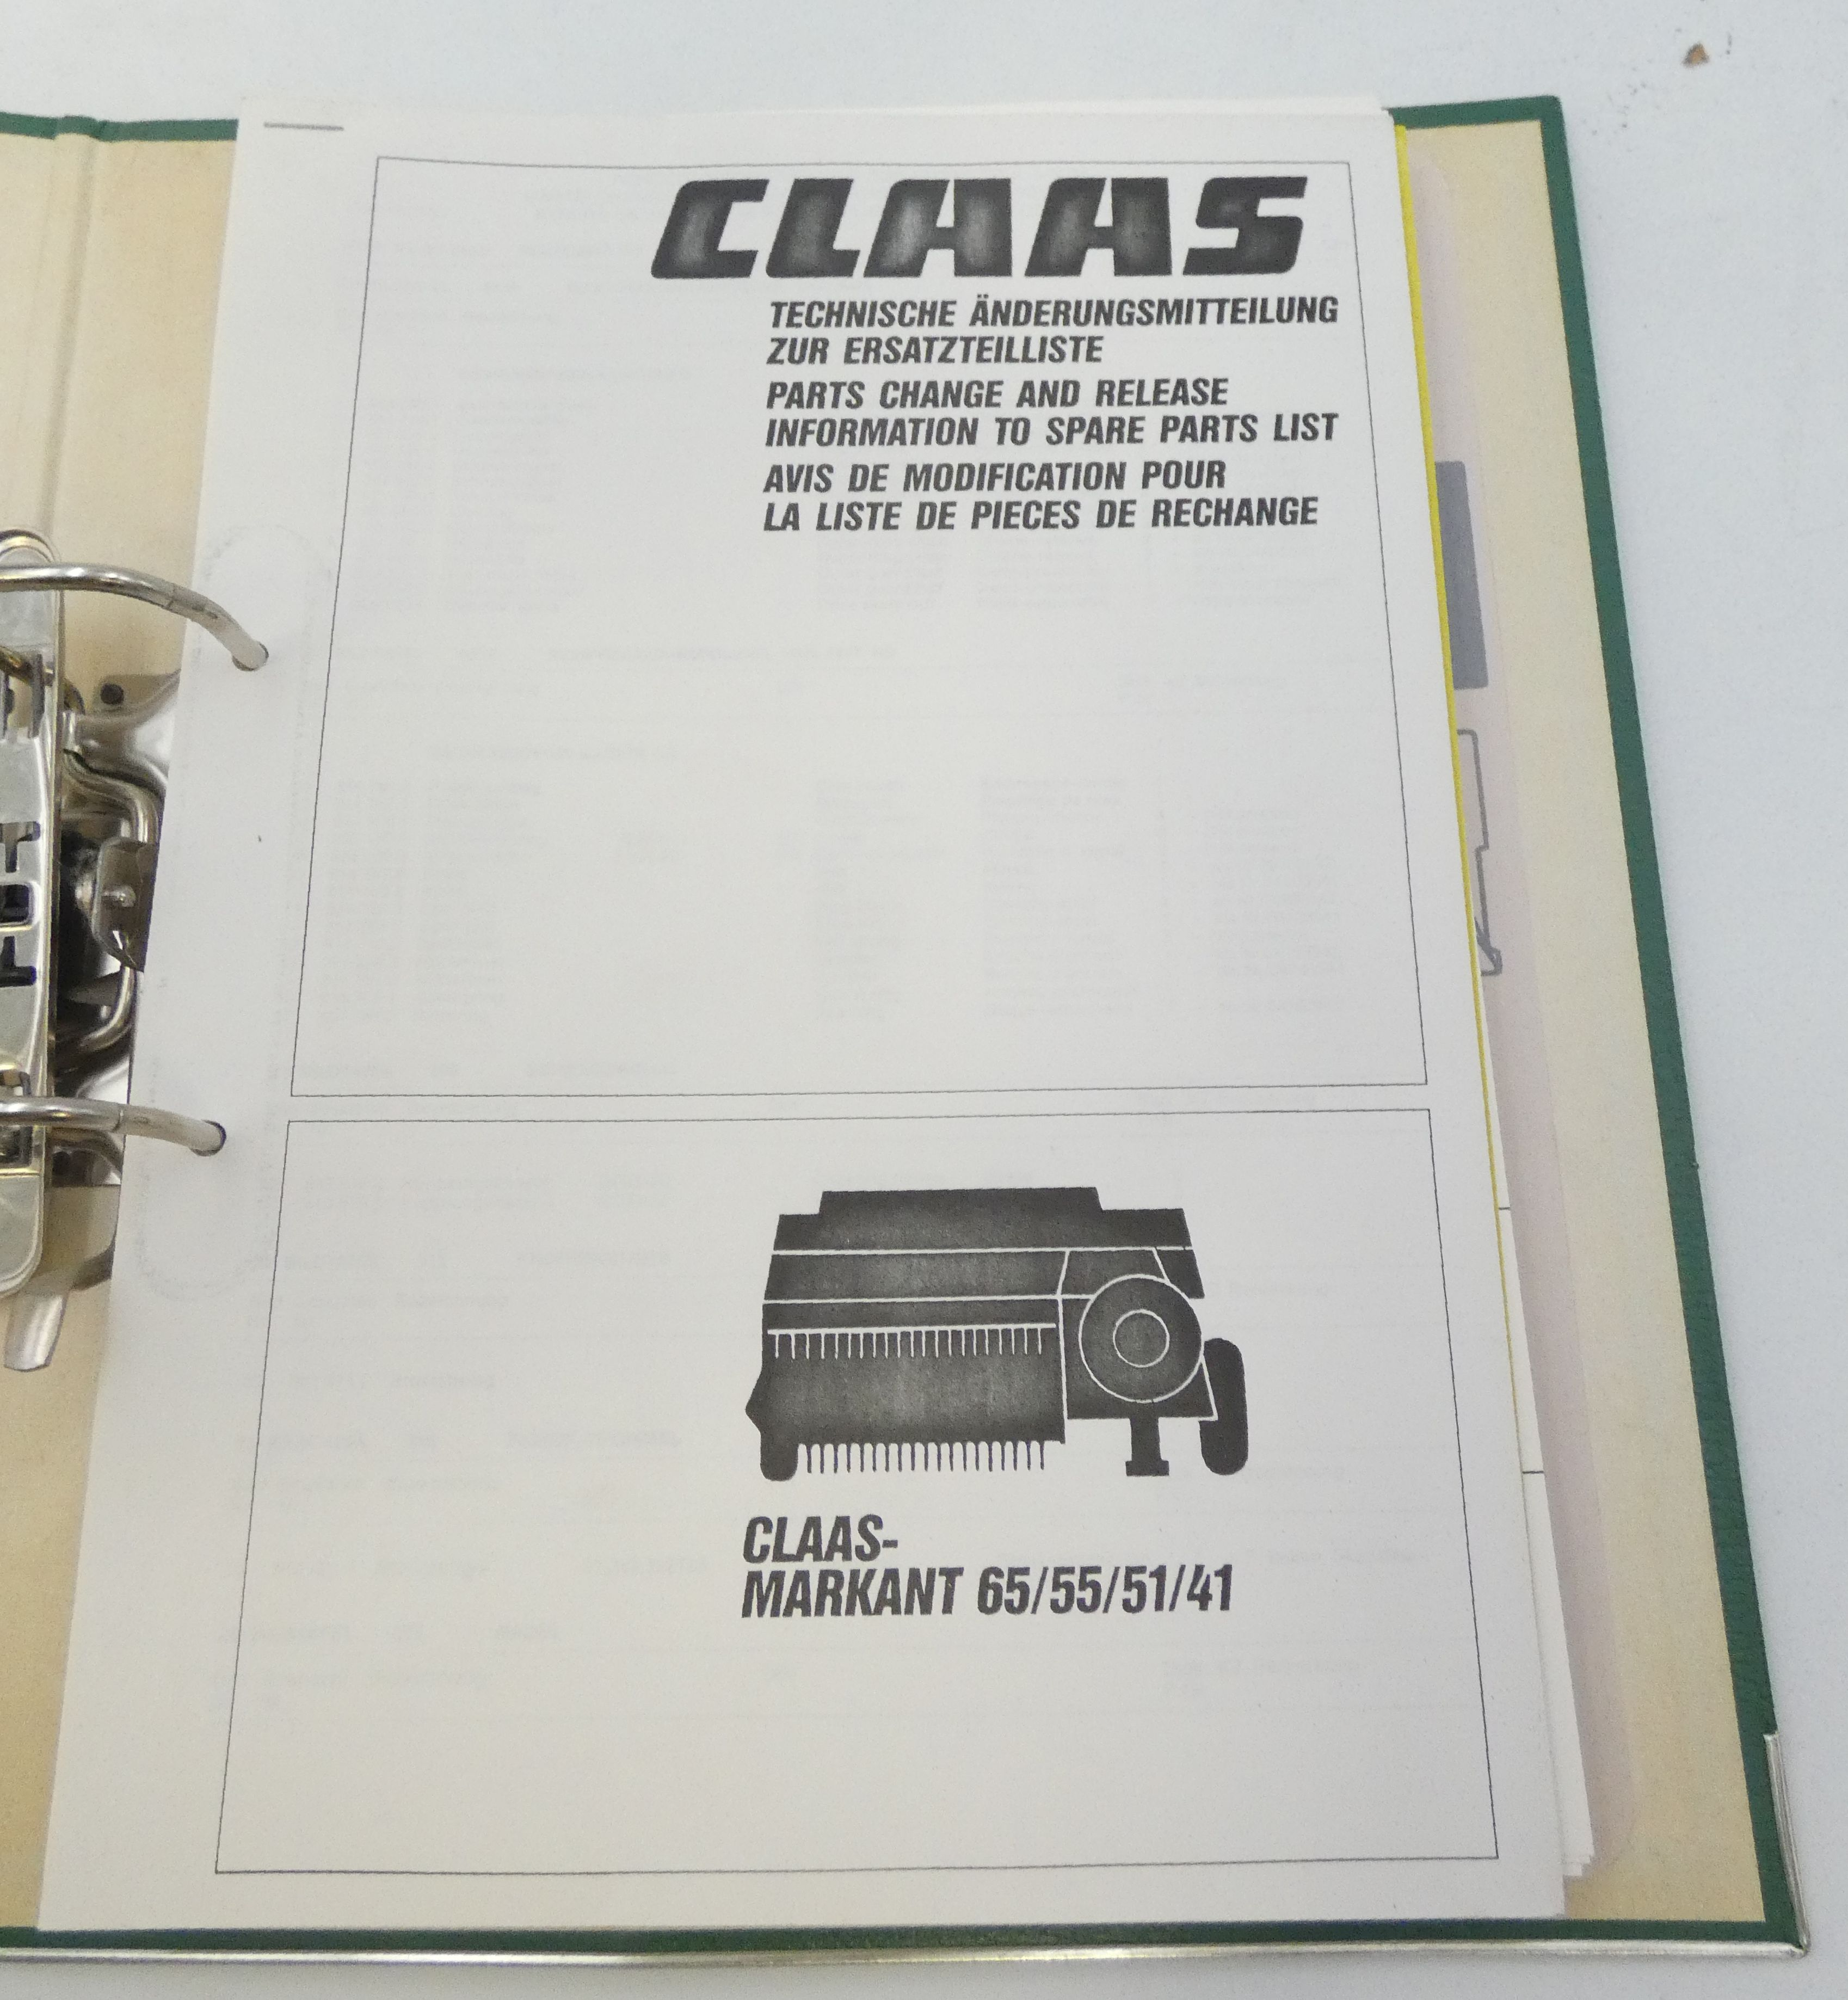 Claas Markant 65/55/51/41 parts change release information + spare parts list